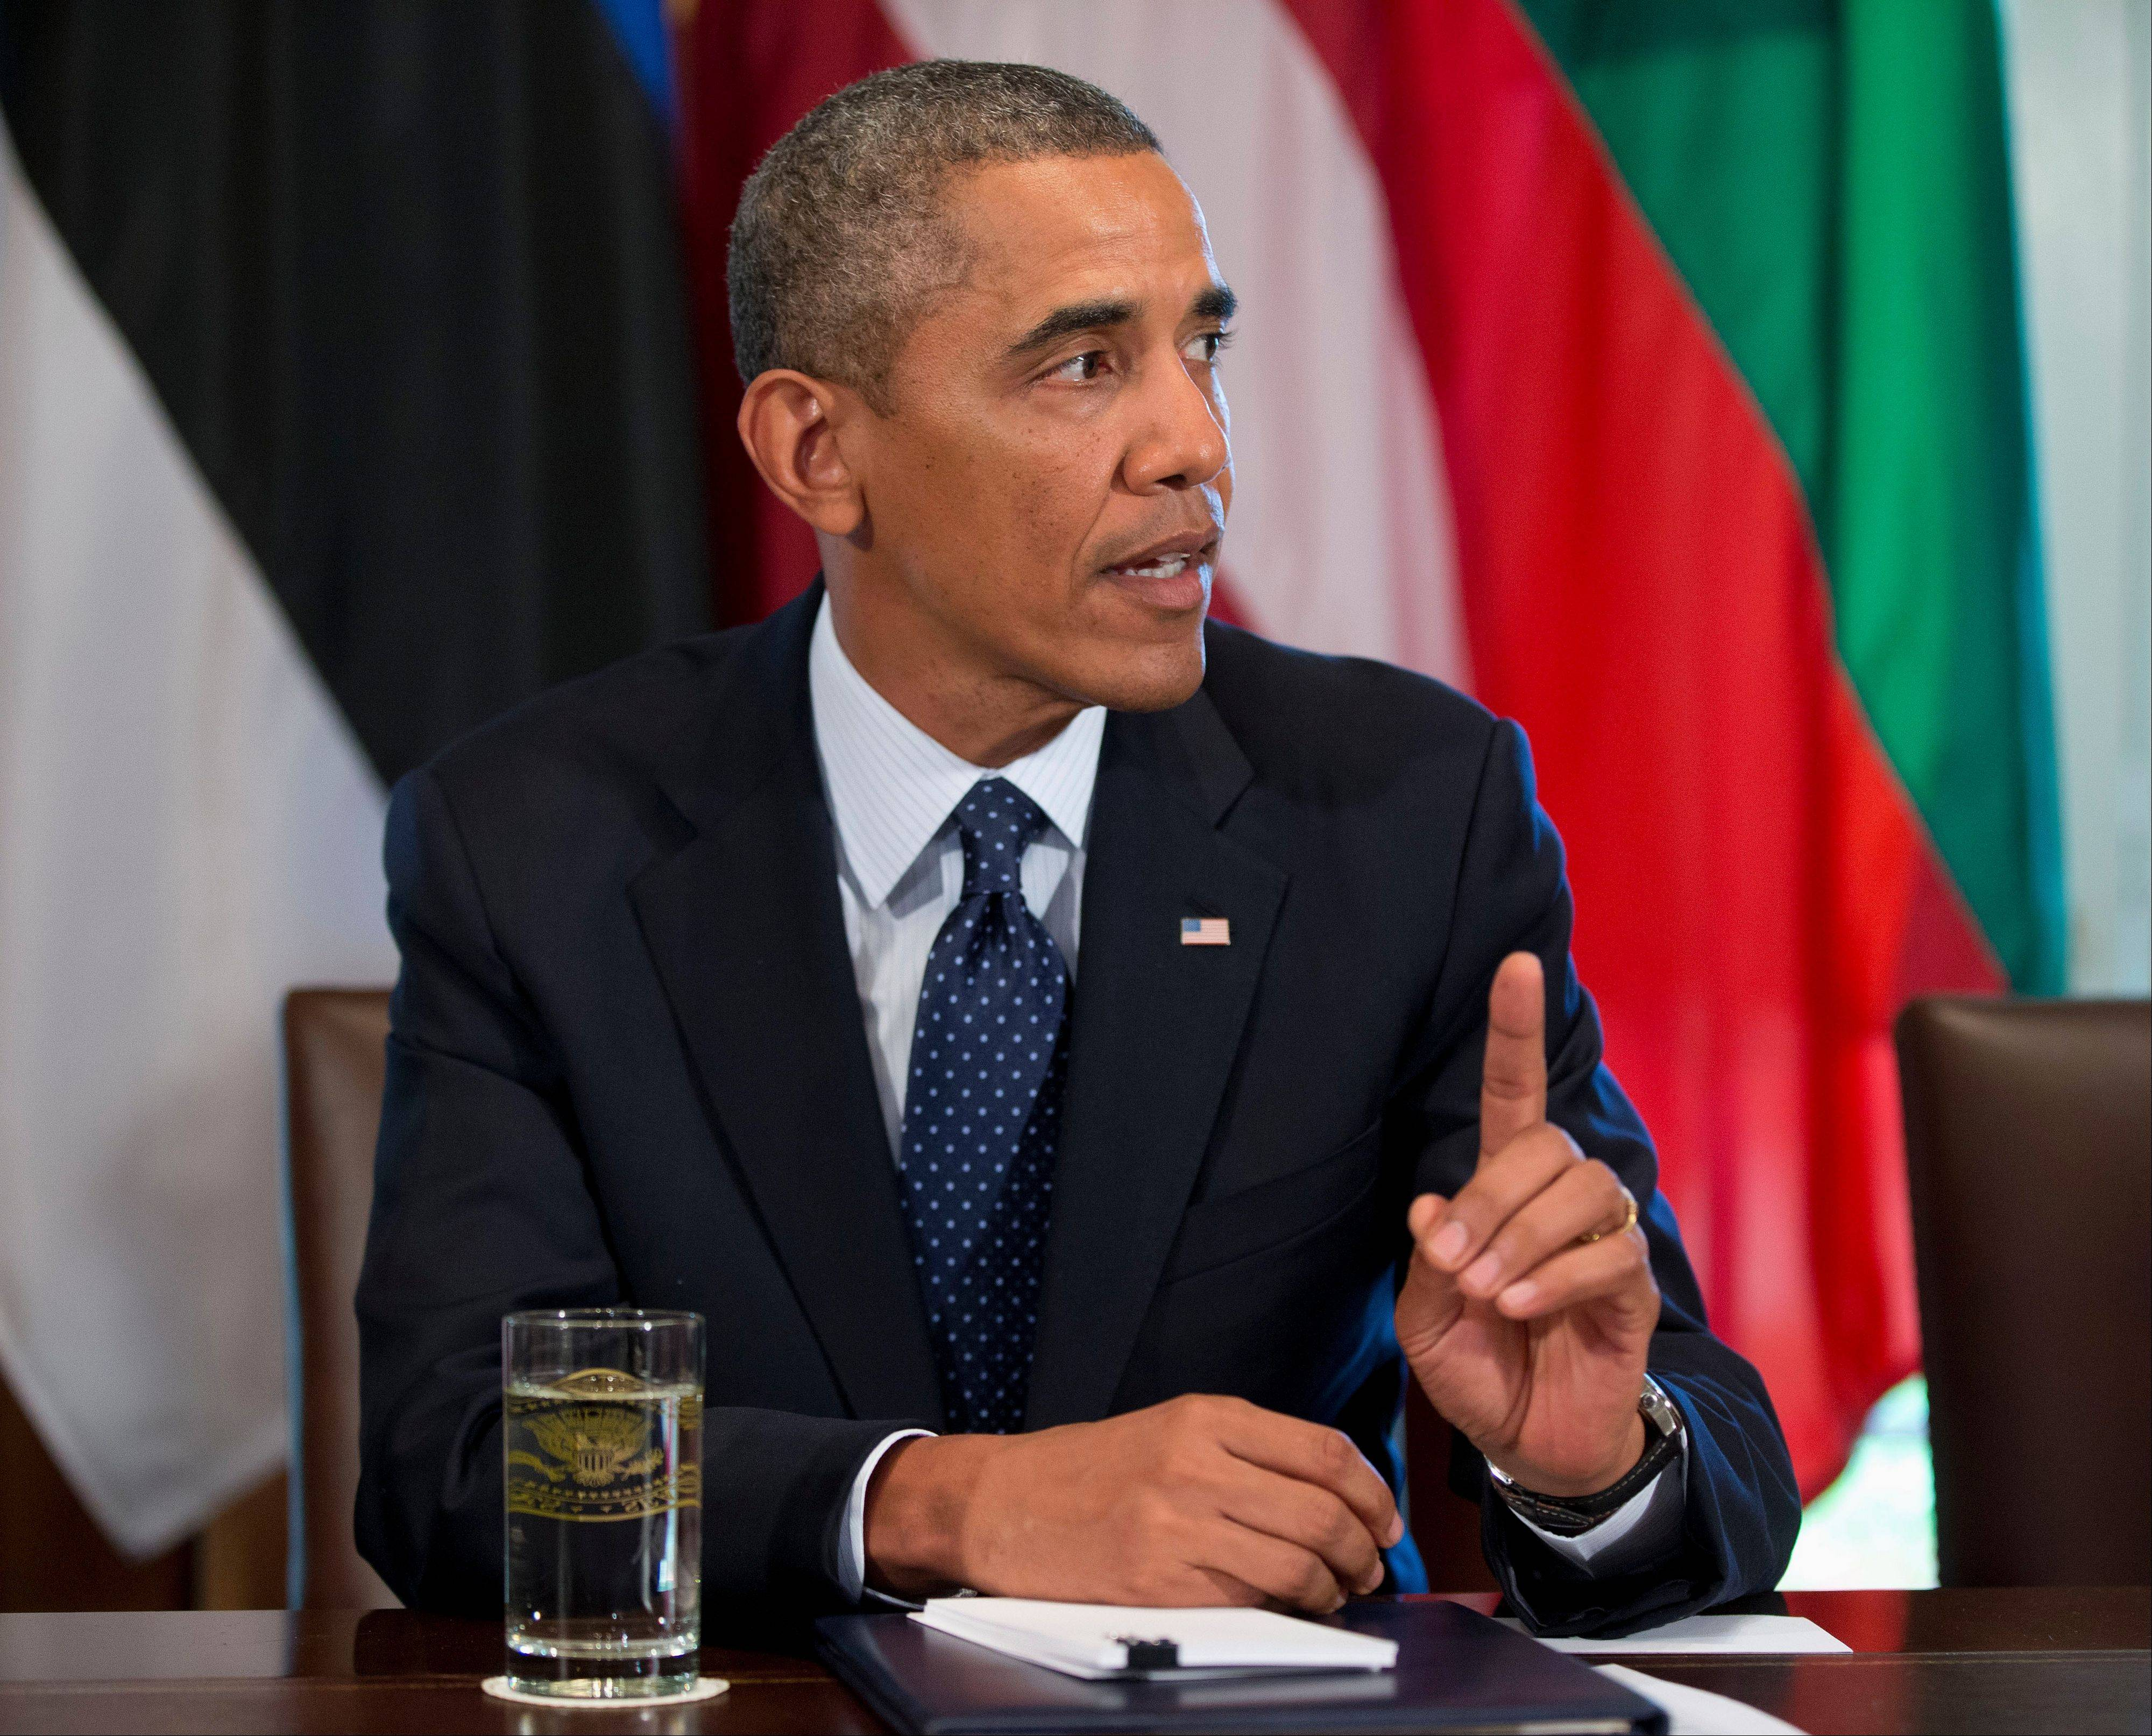 President Obama worked on Monday to persuade skeptical lawmakers to endorse a U.S. military intervention in civil war-wracked Syria, winning conditional support from two leading Senate foreign policy hawks even as he encountered resistance from members of his own party after two days of a determined push to sell the plan.